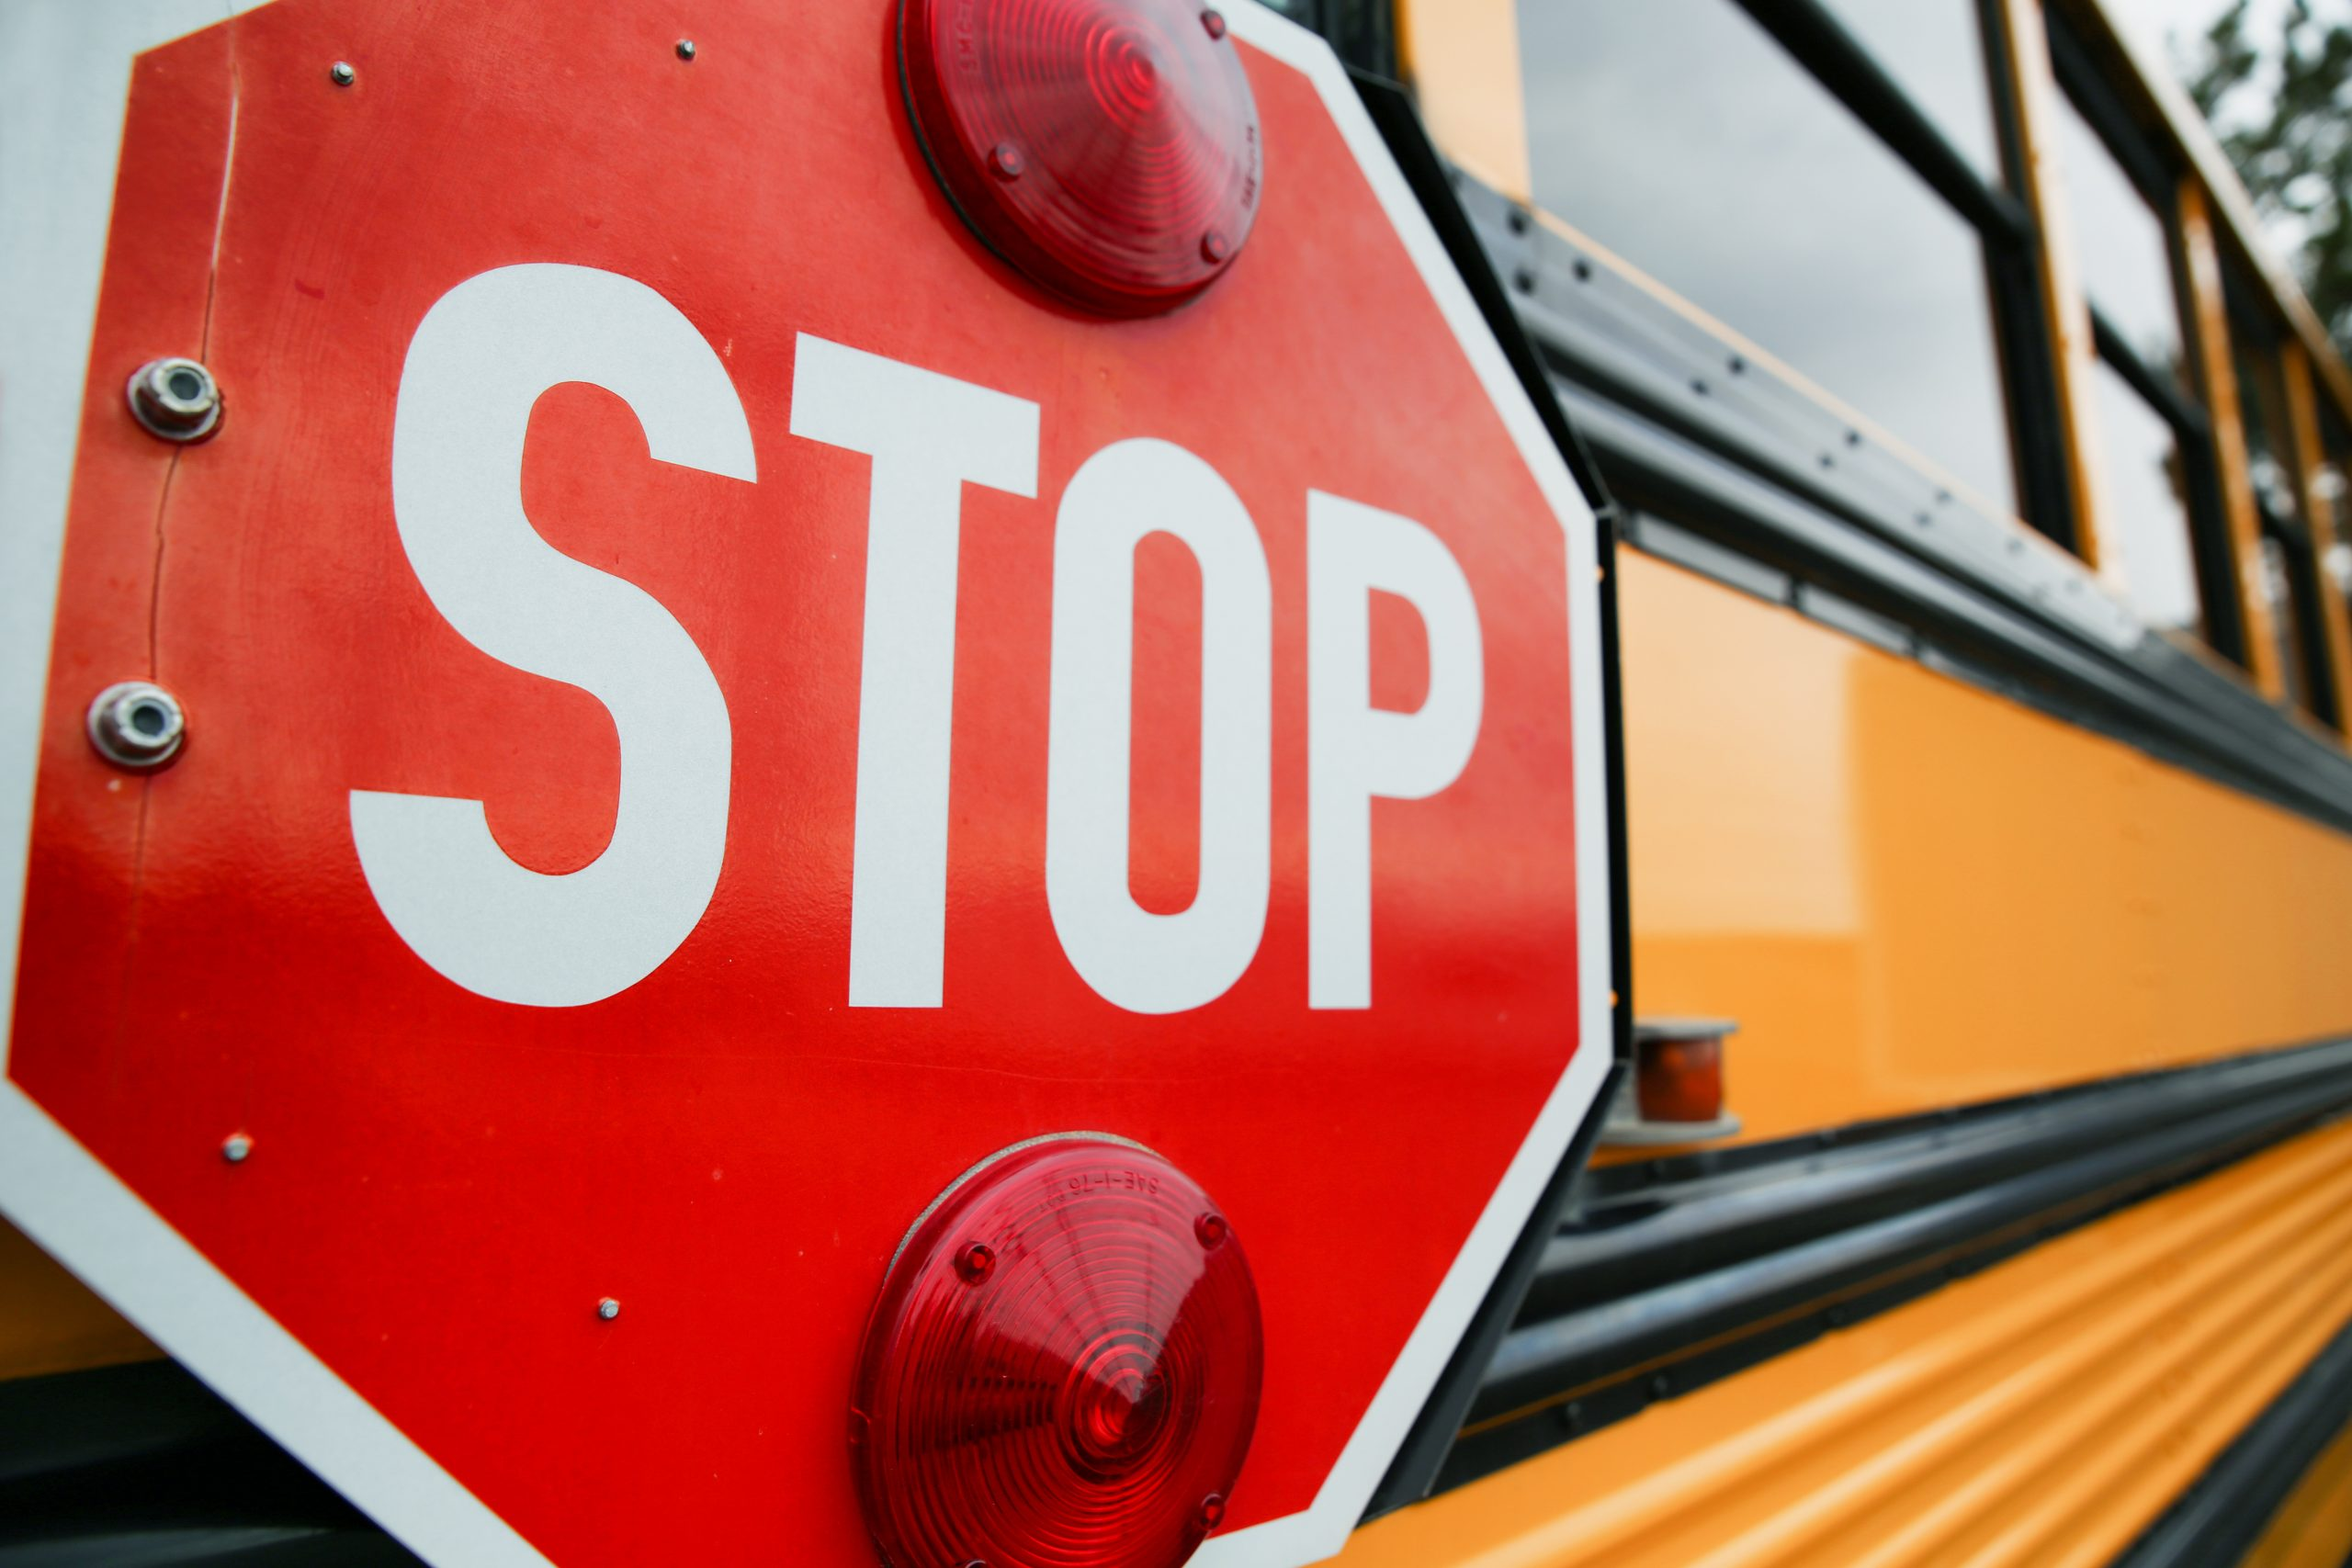 School Bus, Truck Involved In Accident In Christian County